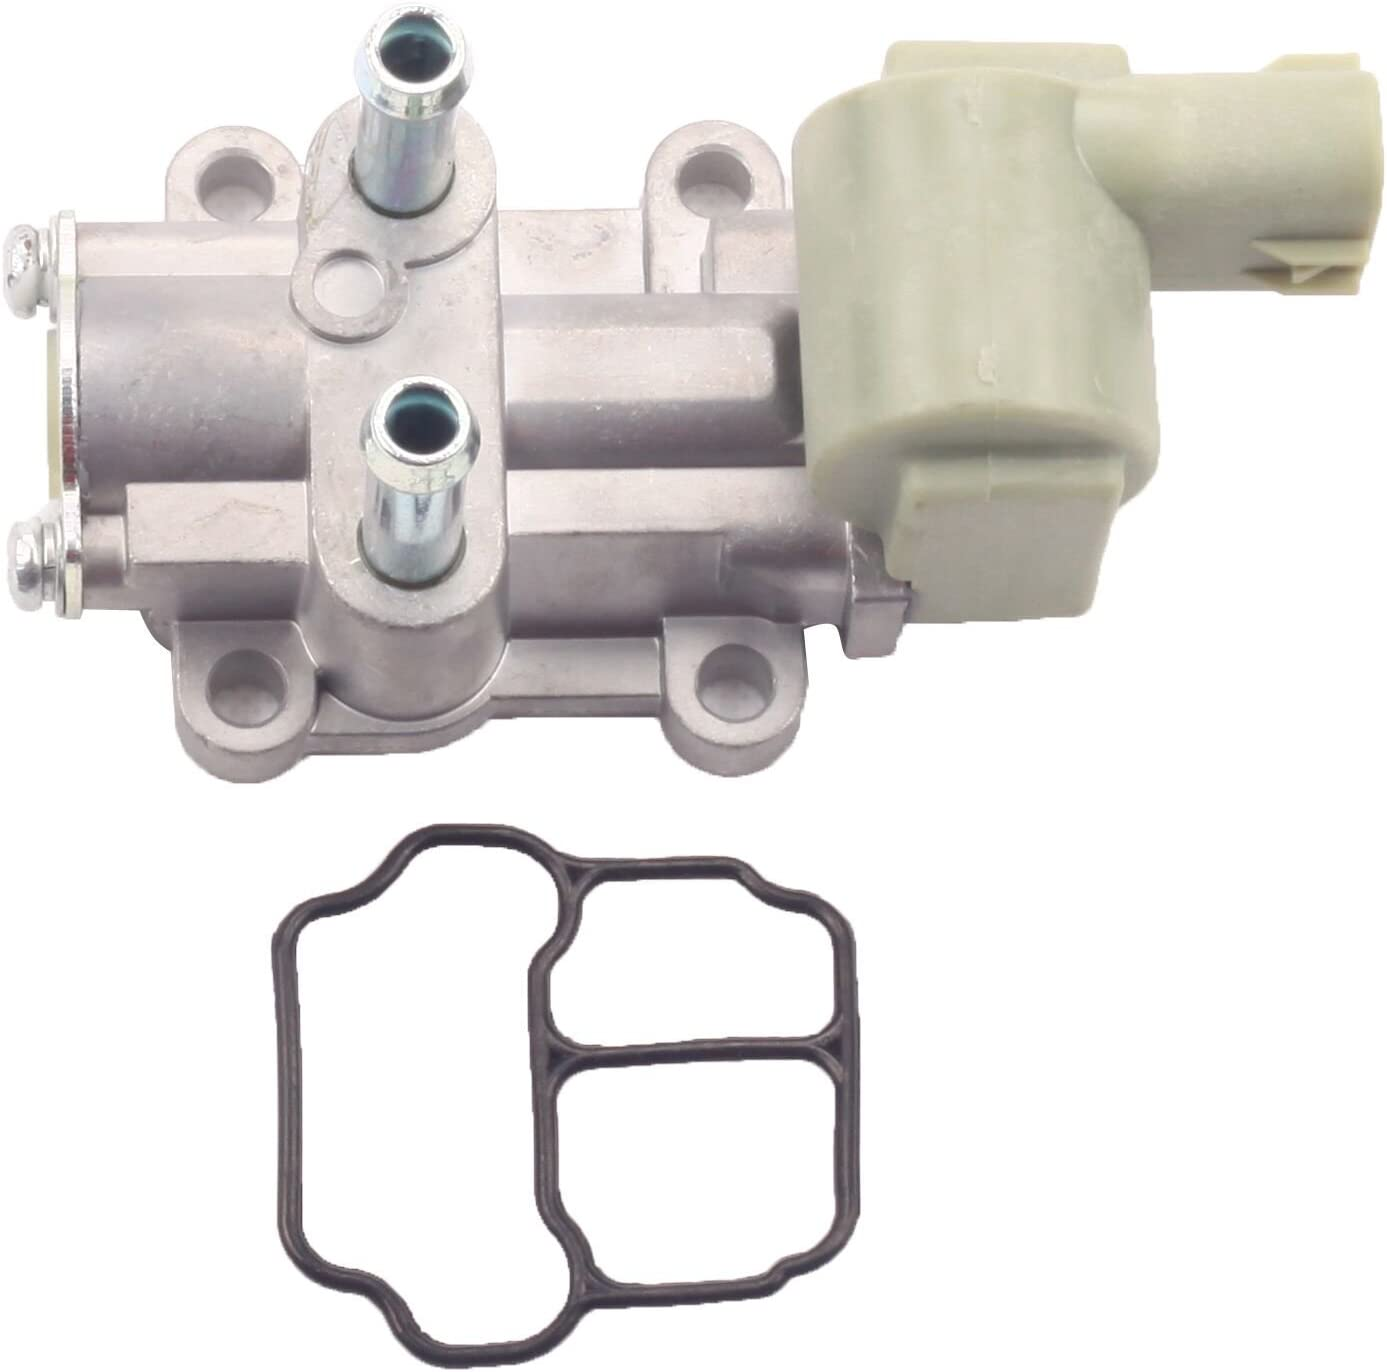 Amazon.com: MOSTPLUS Idle Air Control Valve IACV IAC Compatible for Honda  Civic CX DX EX HX LX GX 1.6L SOHC: Automotive  Amazon.com